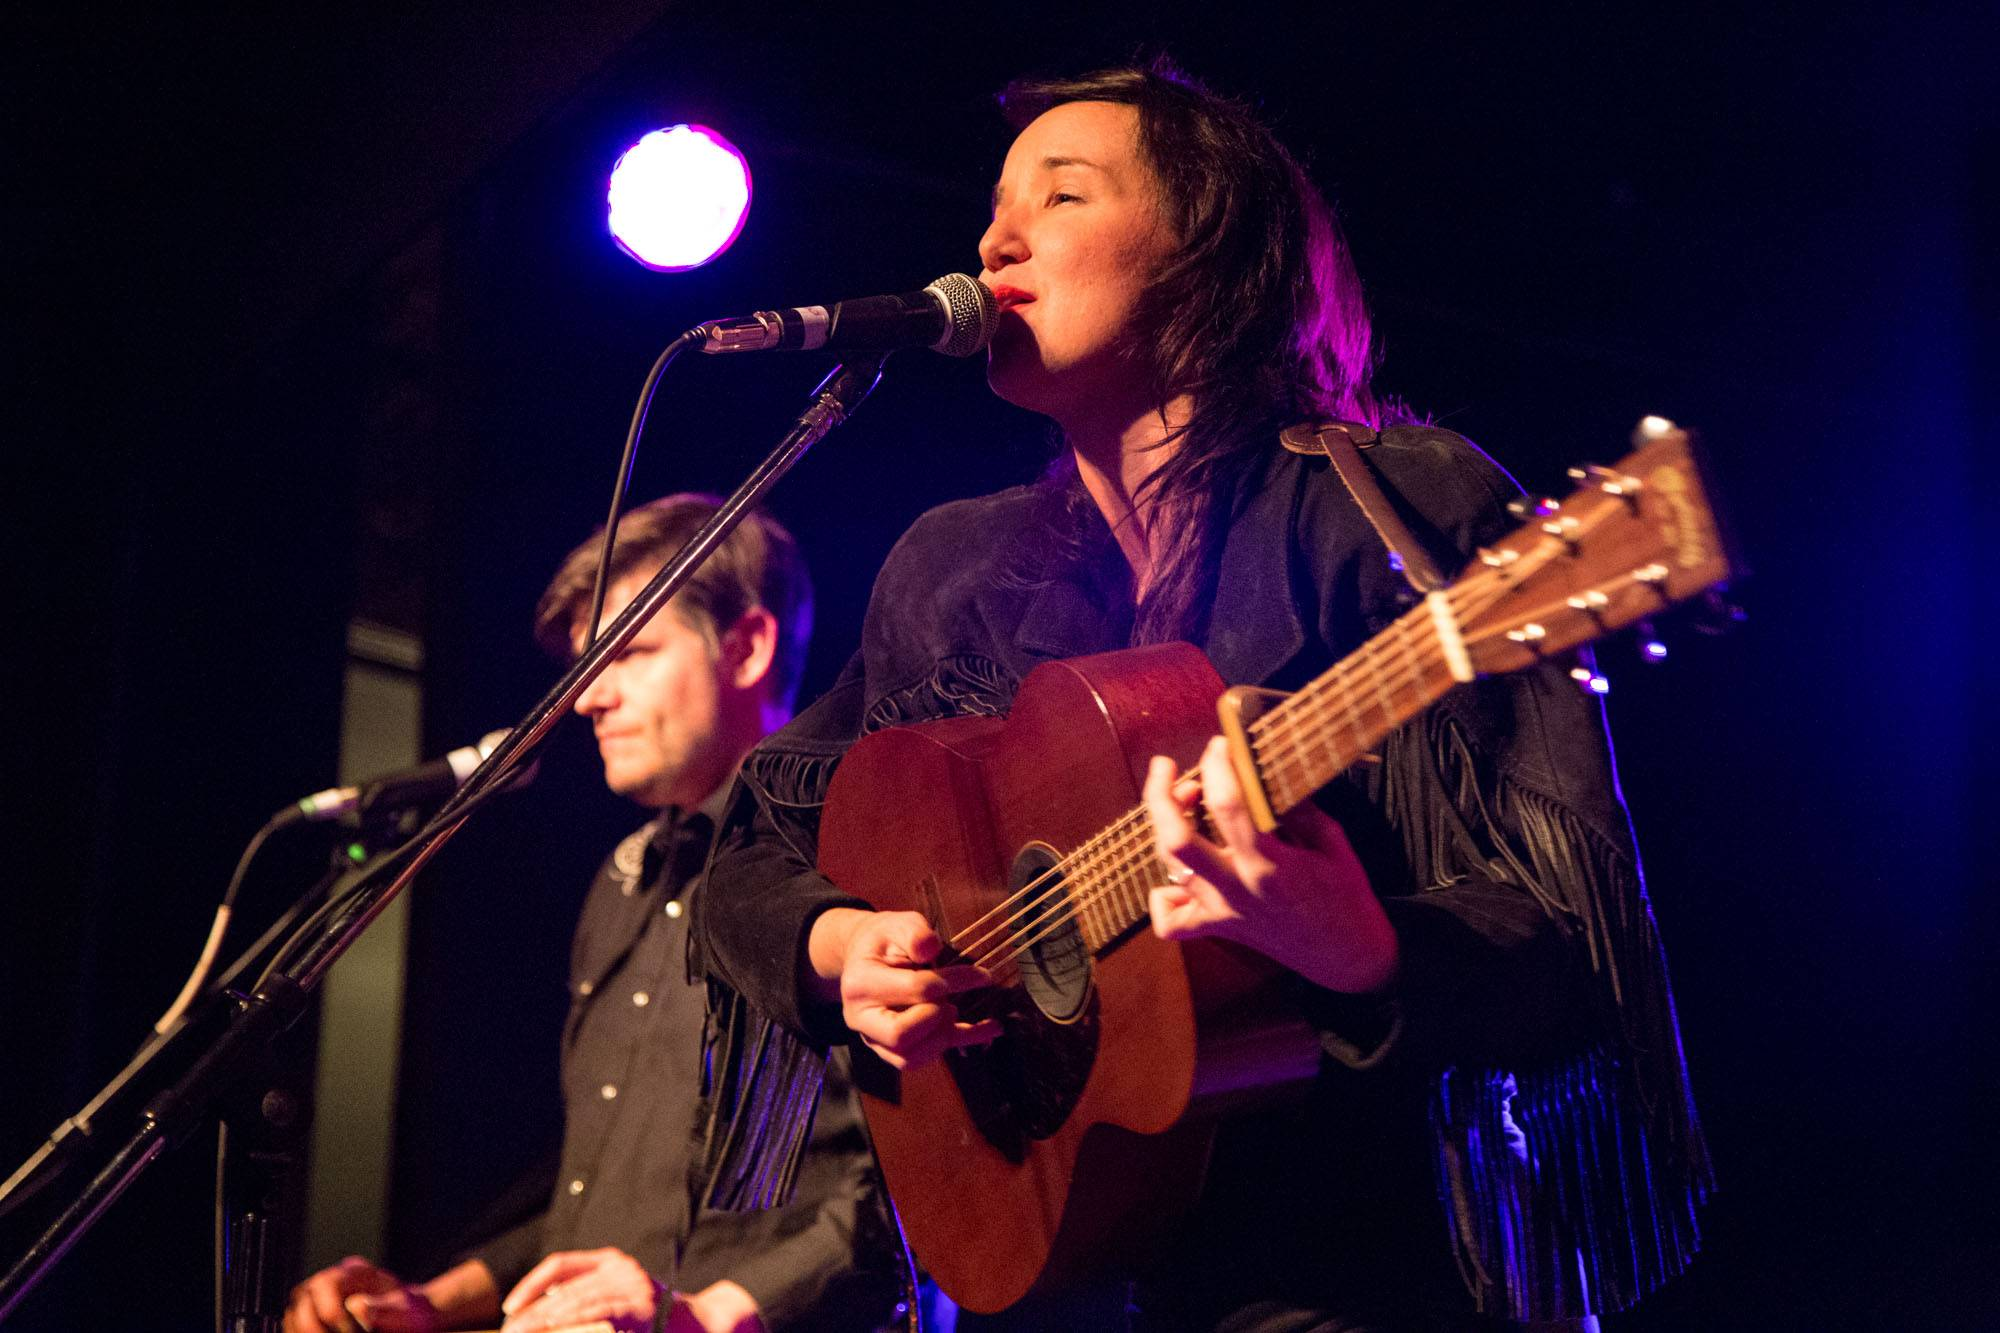 Sarah MacDougall at the Wise Hall, Vancouver, Mar. 29 2015. Kirk Chantraine photo.